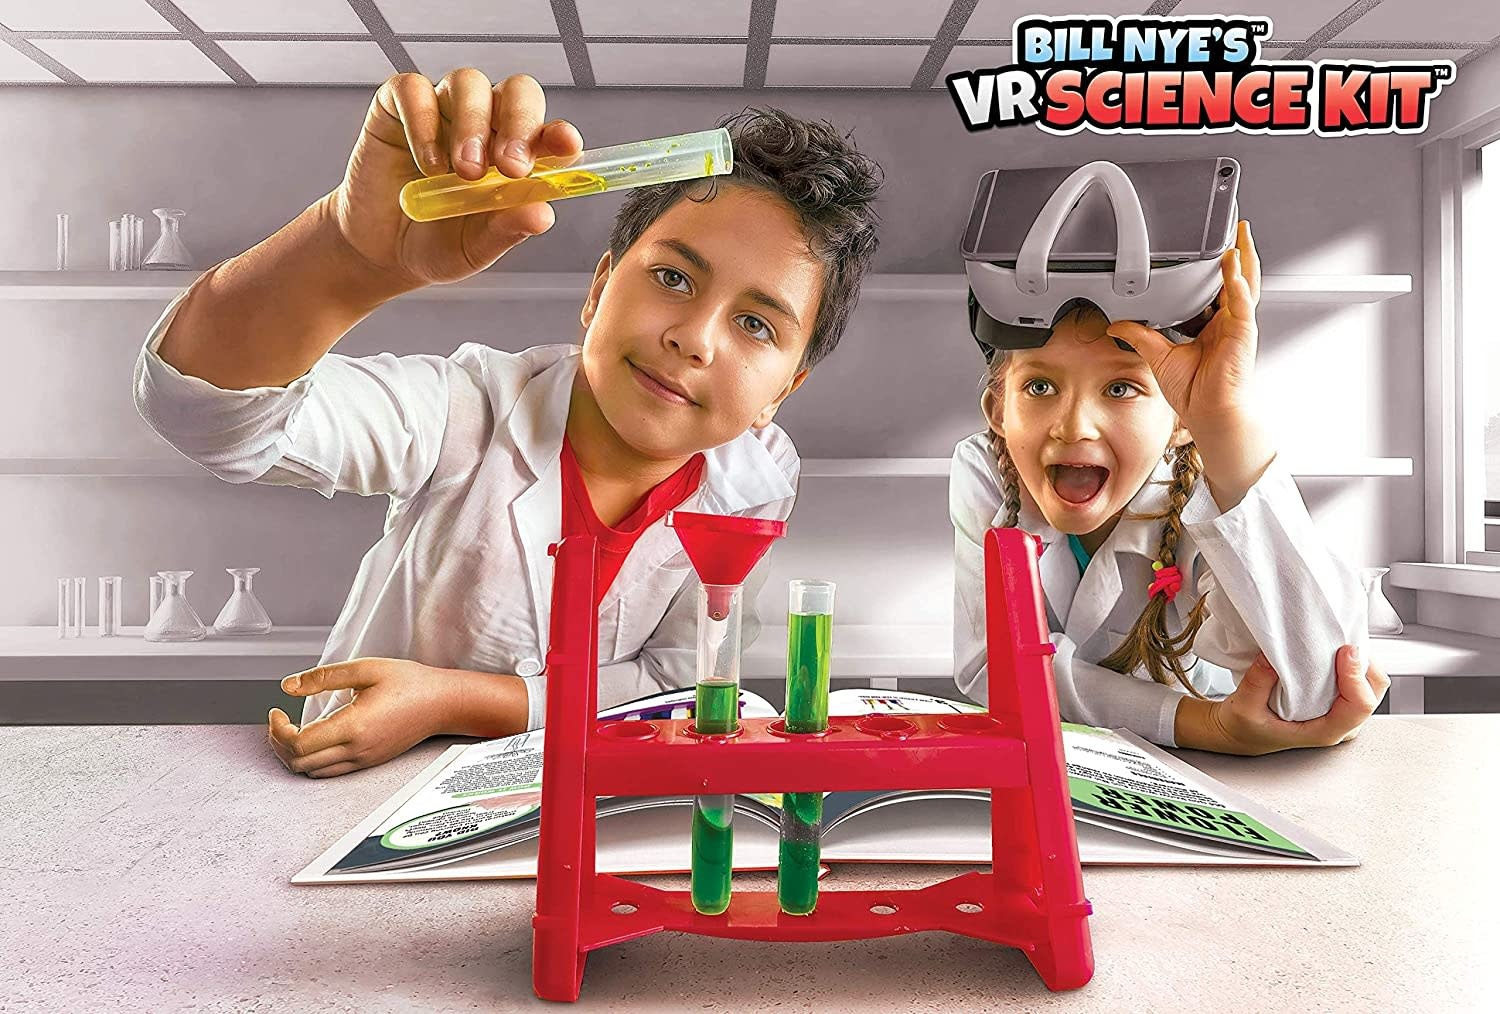 Abacus Bill Nye's VR Science Kit Virtual Reality Kids Science Kit, Book and Interactive Learning Activity Set